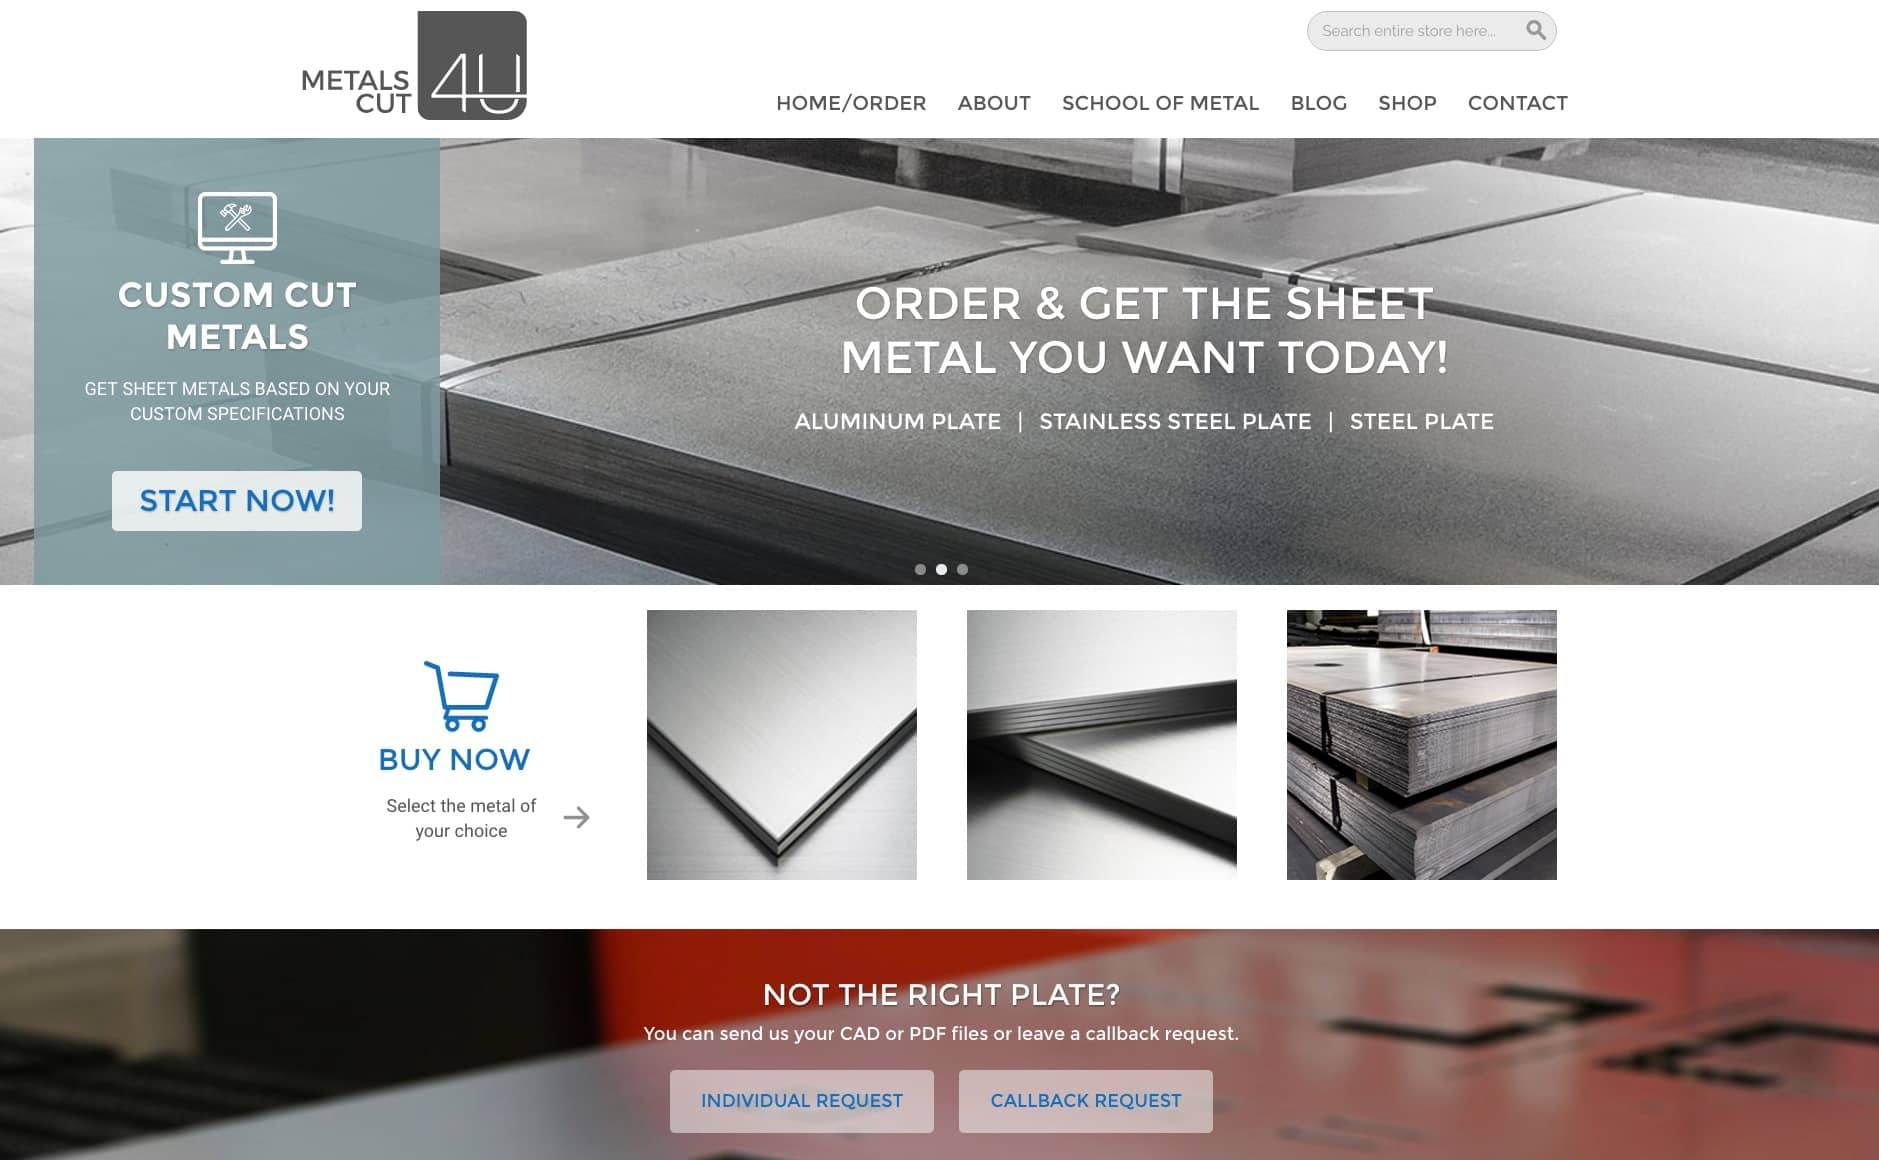 Order Sheet Metal online - we cut and bend to your specs